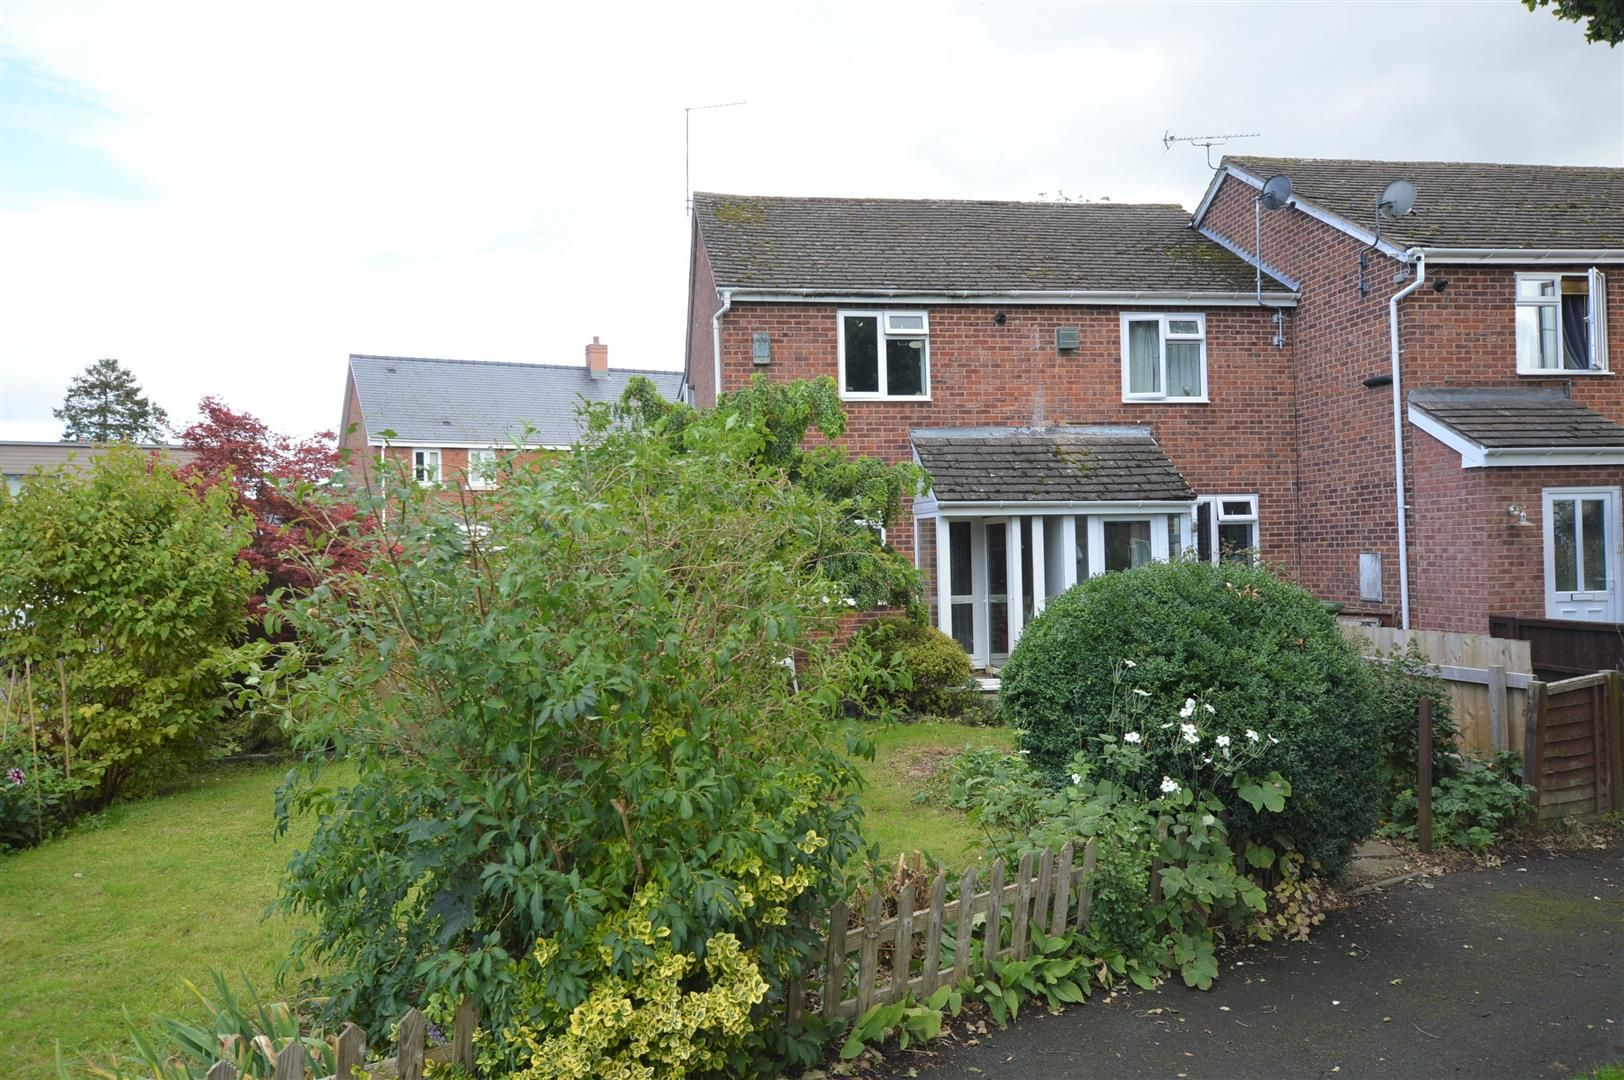 2 bed end-of-terrace for sale in Leominster, HR6